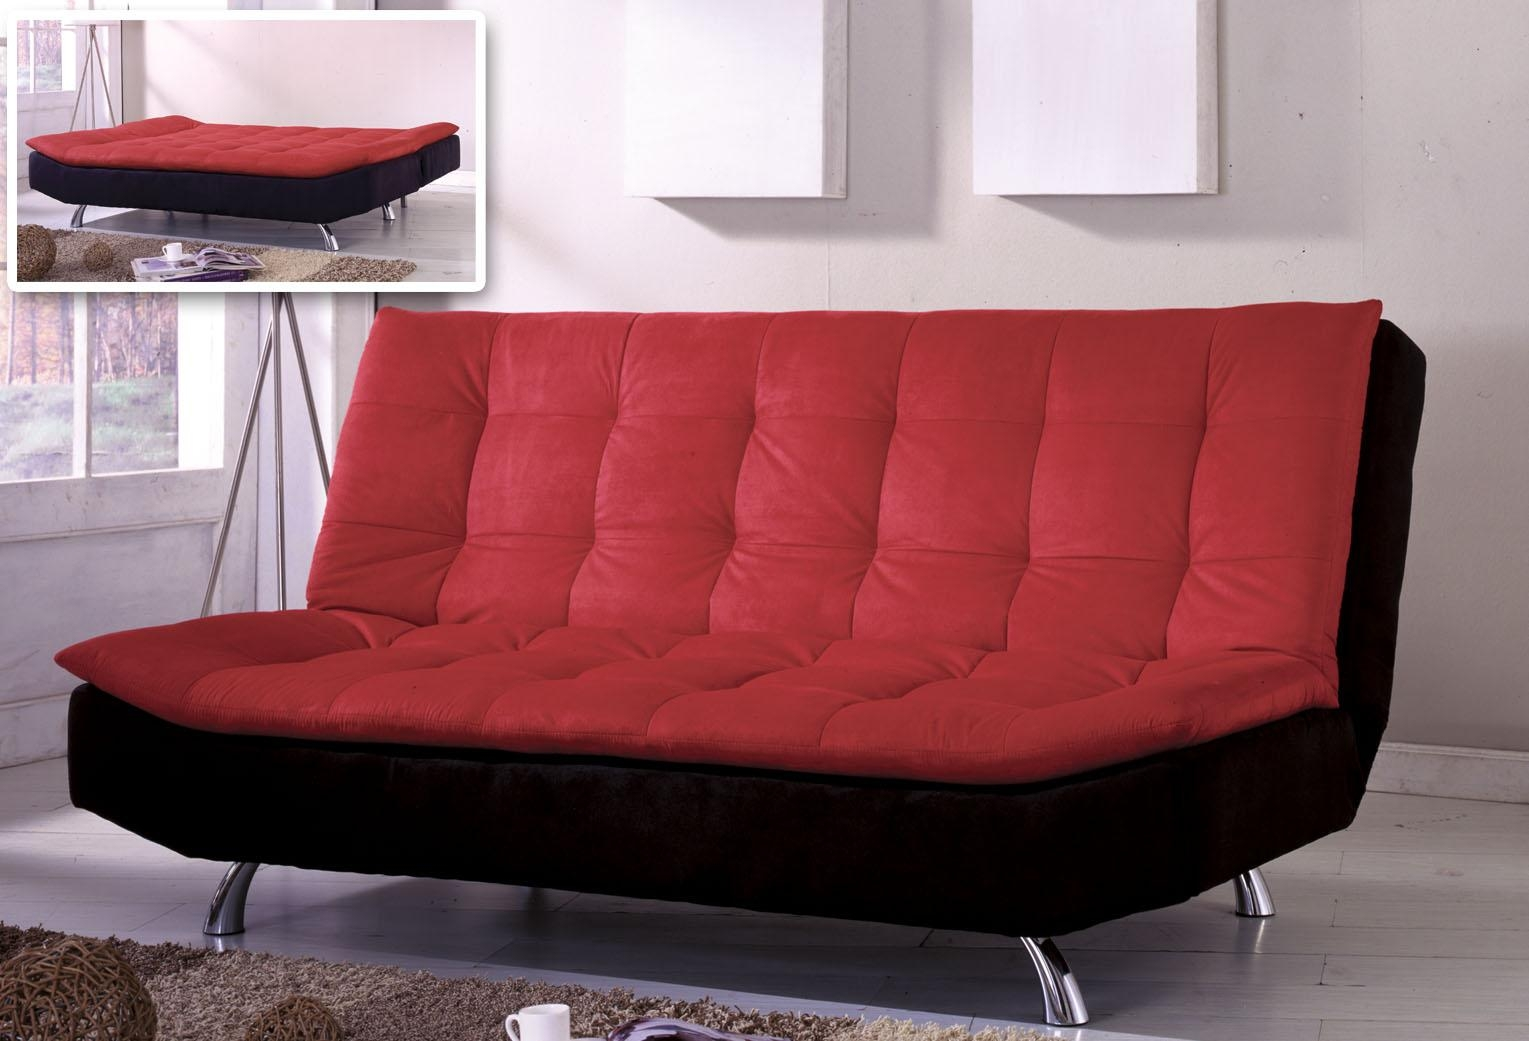 Ideas Futon Couch Bed : Futon Couch Bed Design – Home Decor Pertaining To Futon Couch Beds (Image 15 of 20)